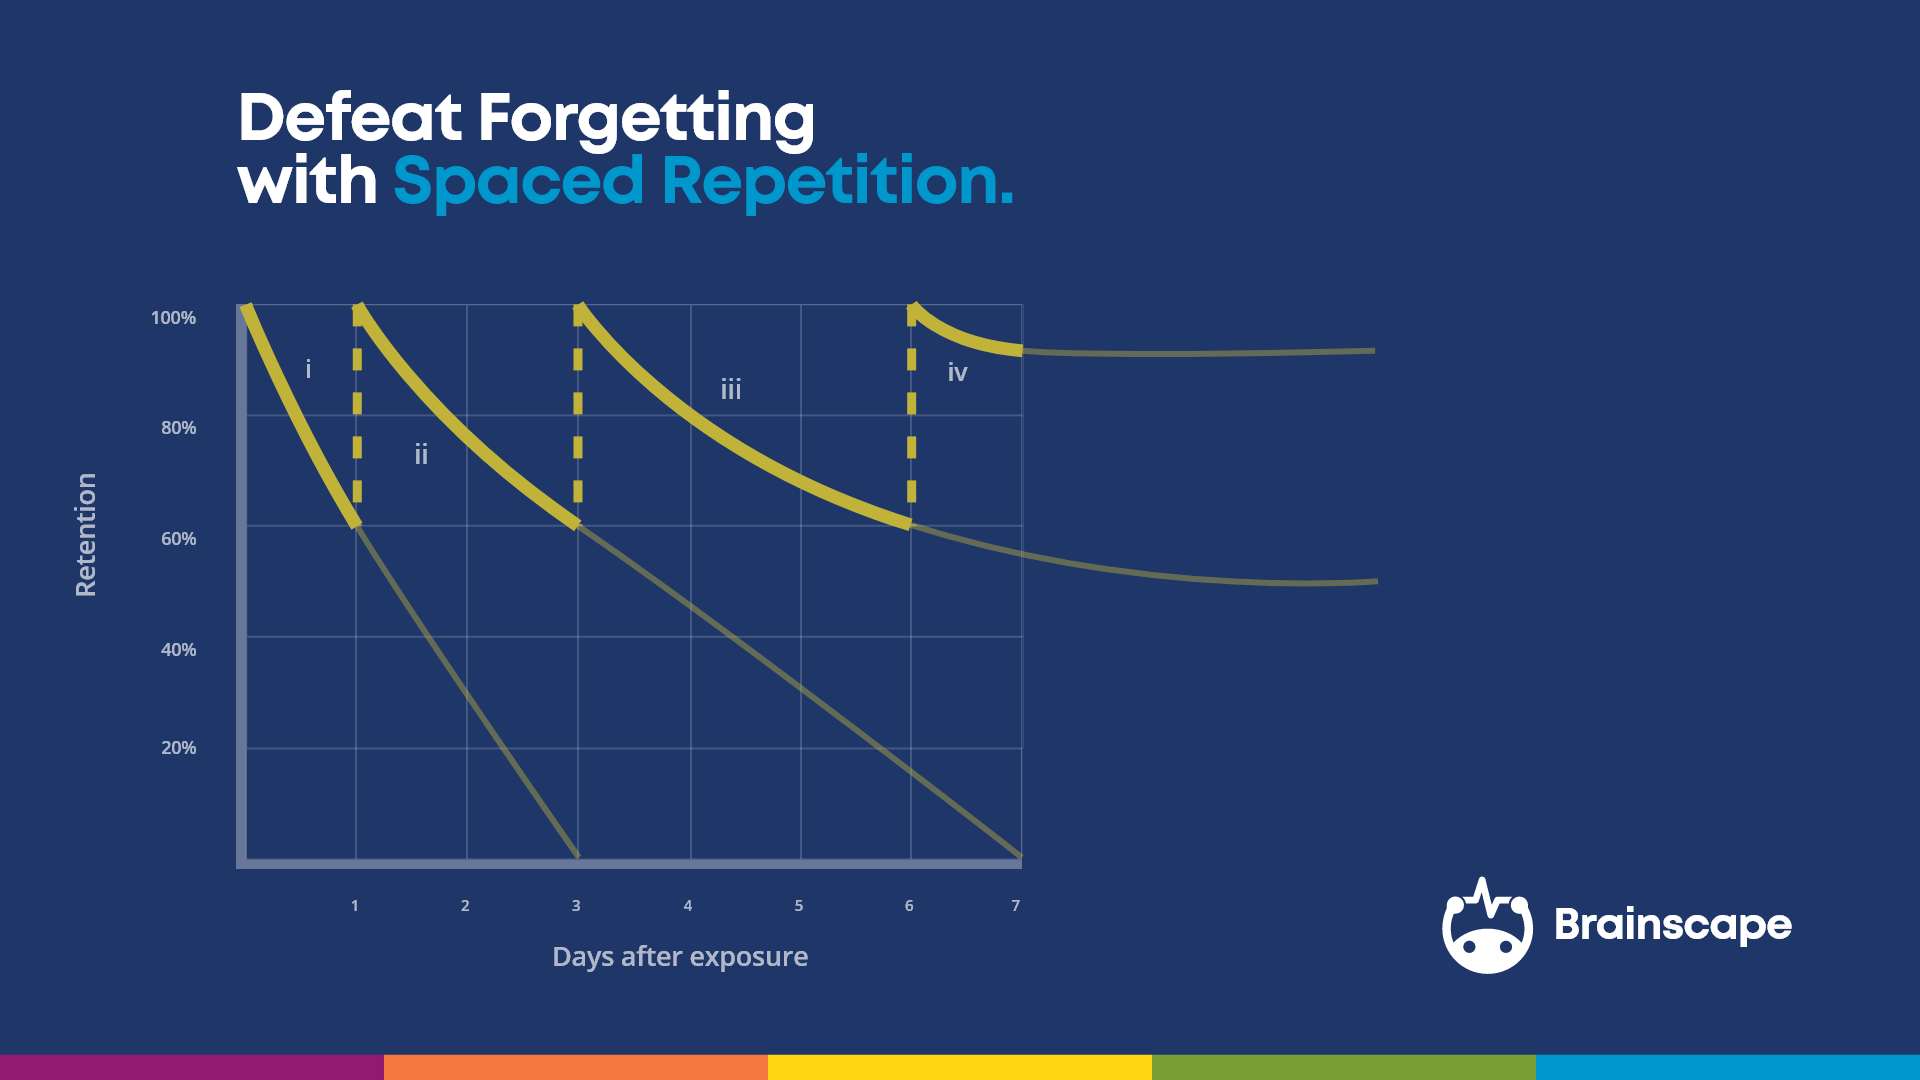 Brainscape uses spaced repetition to help you learn a language faster